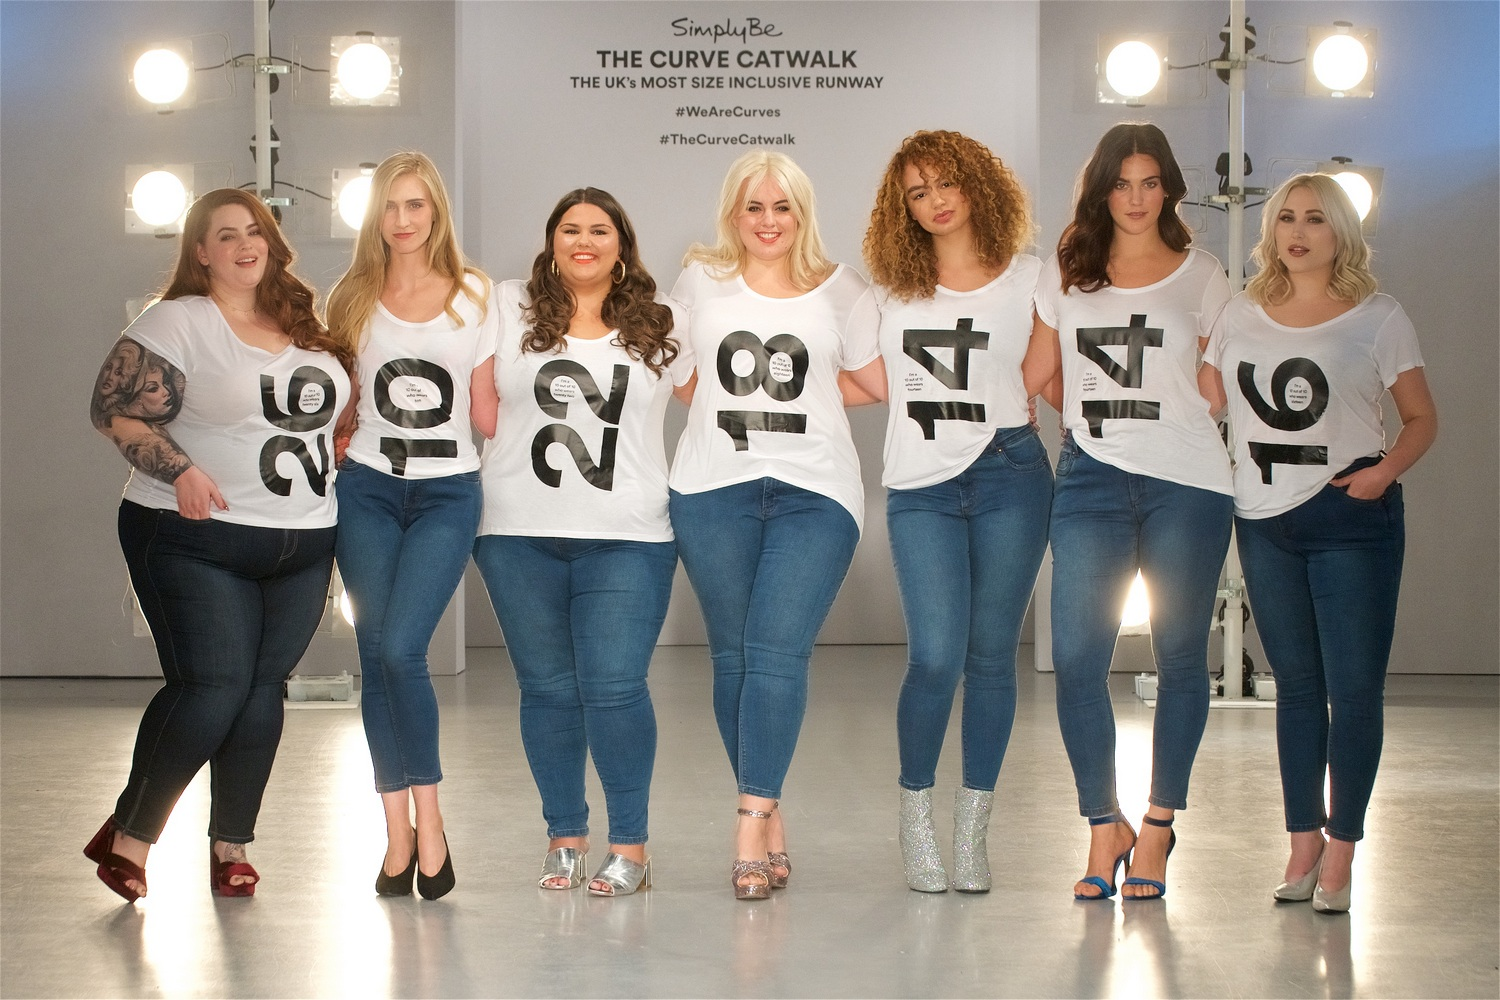 Models from sizes 10 to 26 pose on the Curve Catwalk